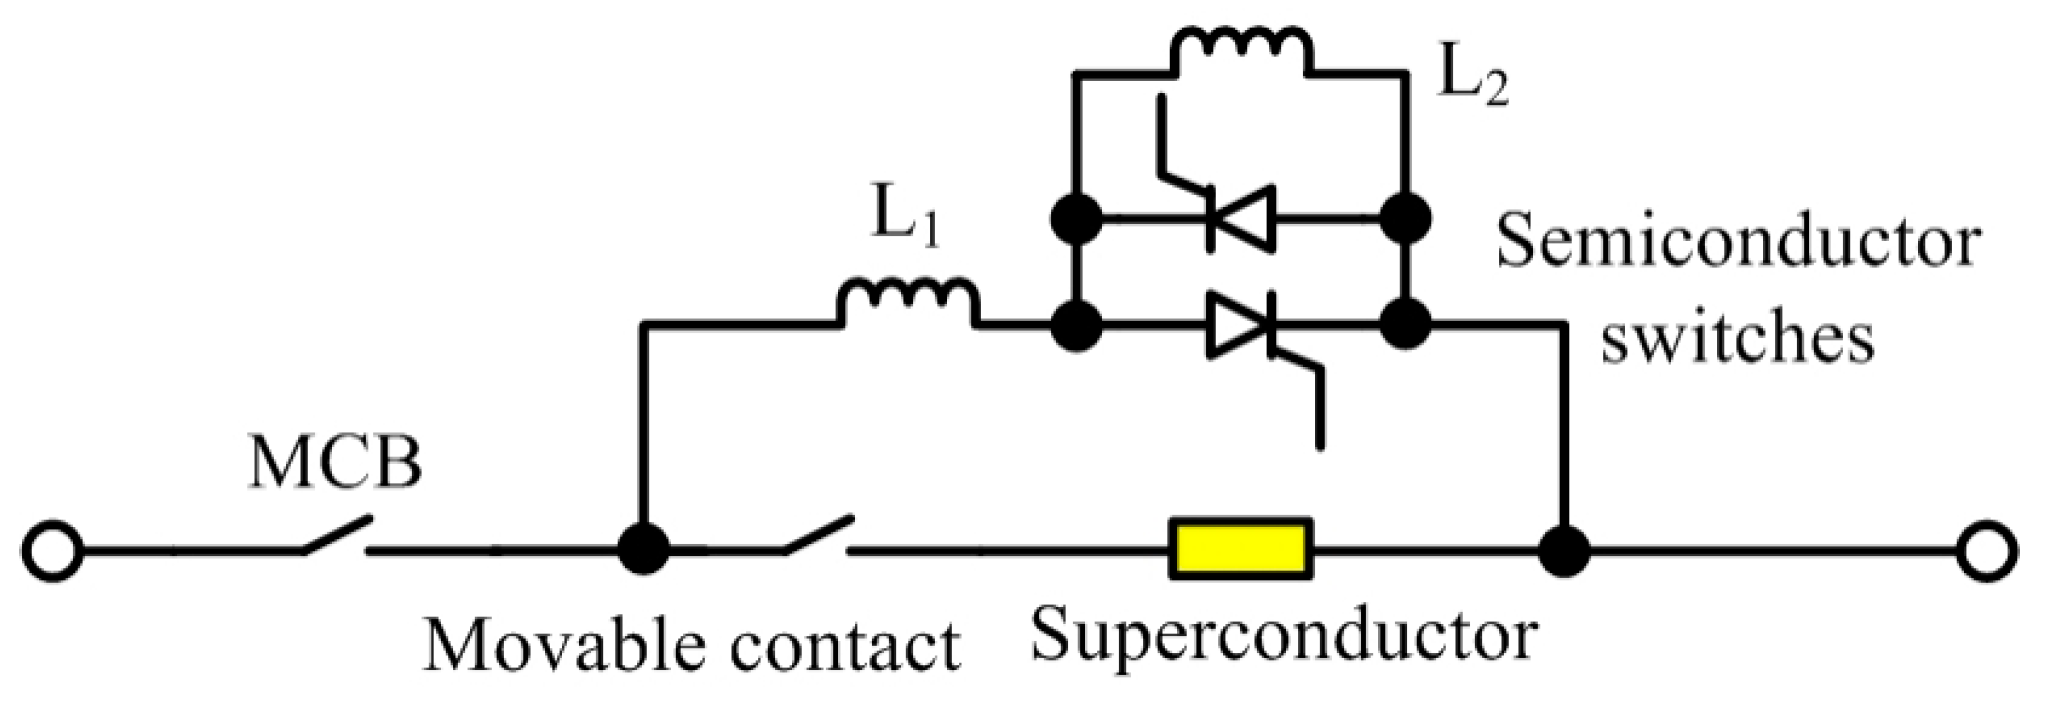 Energies Free Full Text Semiconductor Devices In Solid State Current Limiter Transistor Limit Circuit Limiting 10 00495 G008